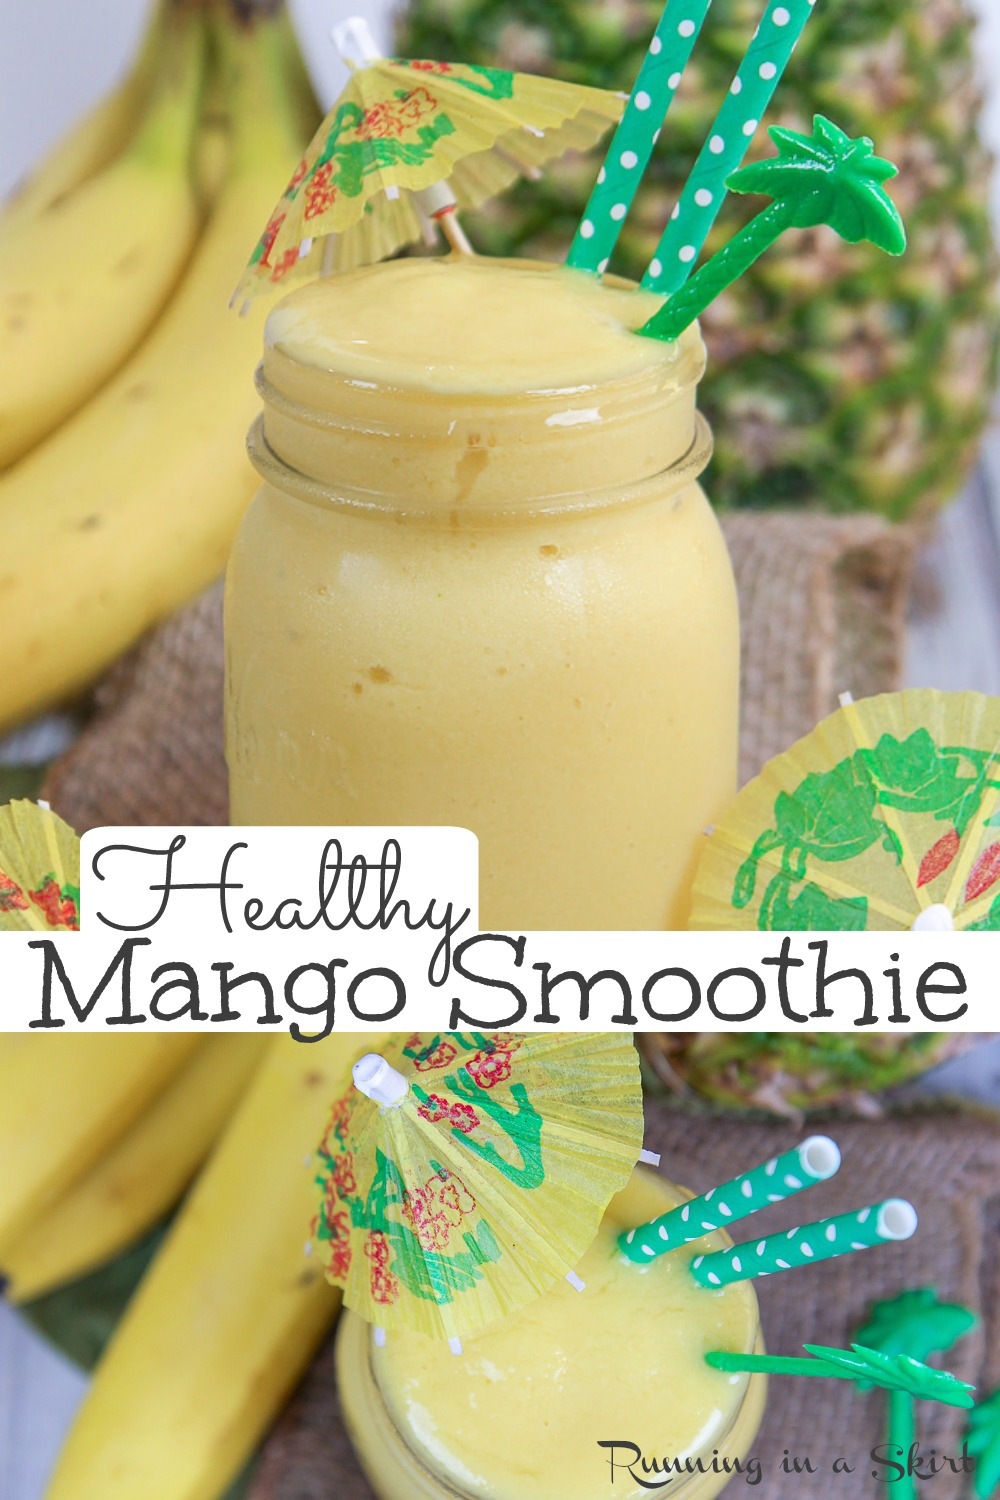 Healthy Mango Smoothie - the BEST Mango Pineapple Smoothie with Banana. Only 4 Ingredients! Super easy, healthy, and uses frozen fruit and coconut milk. A creamy vegan recipe without yogurt. Includes how to make a smoothie instruction. The perfect healthy breakfast. Clean Eating, Dairy Free, Low Calorie, Gluten Free / Running in a Skirt #vegetarian #vegan #vegansmoothie #smoothie #mango #cleaneating via @juliewunder